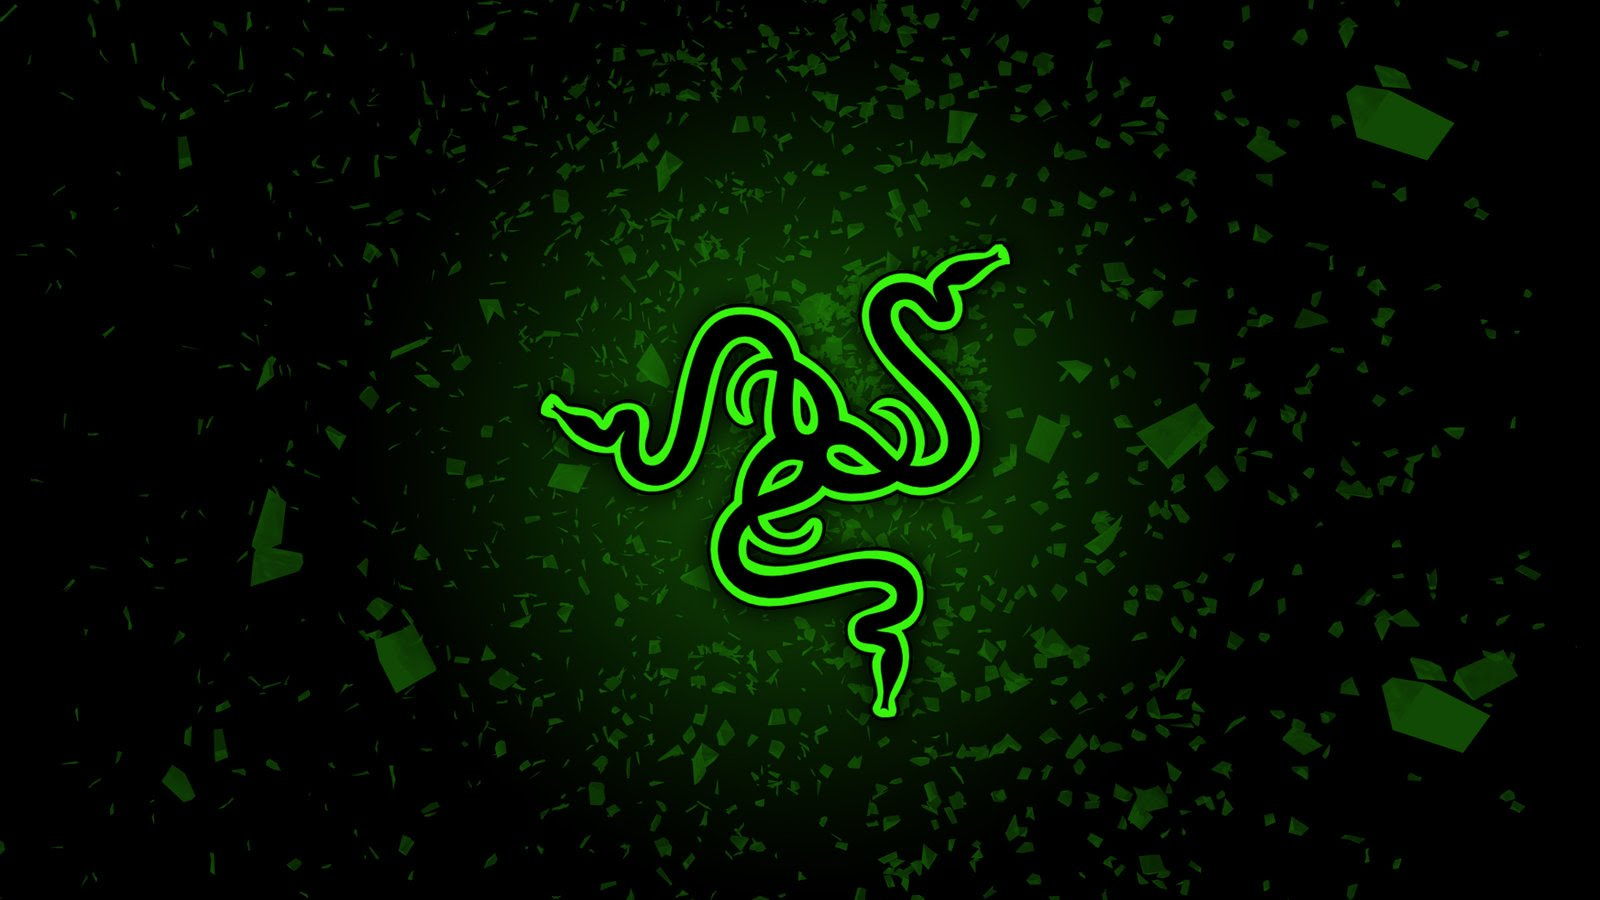 Very Bad Tweet by Razer